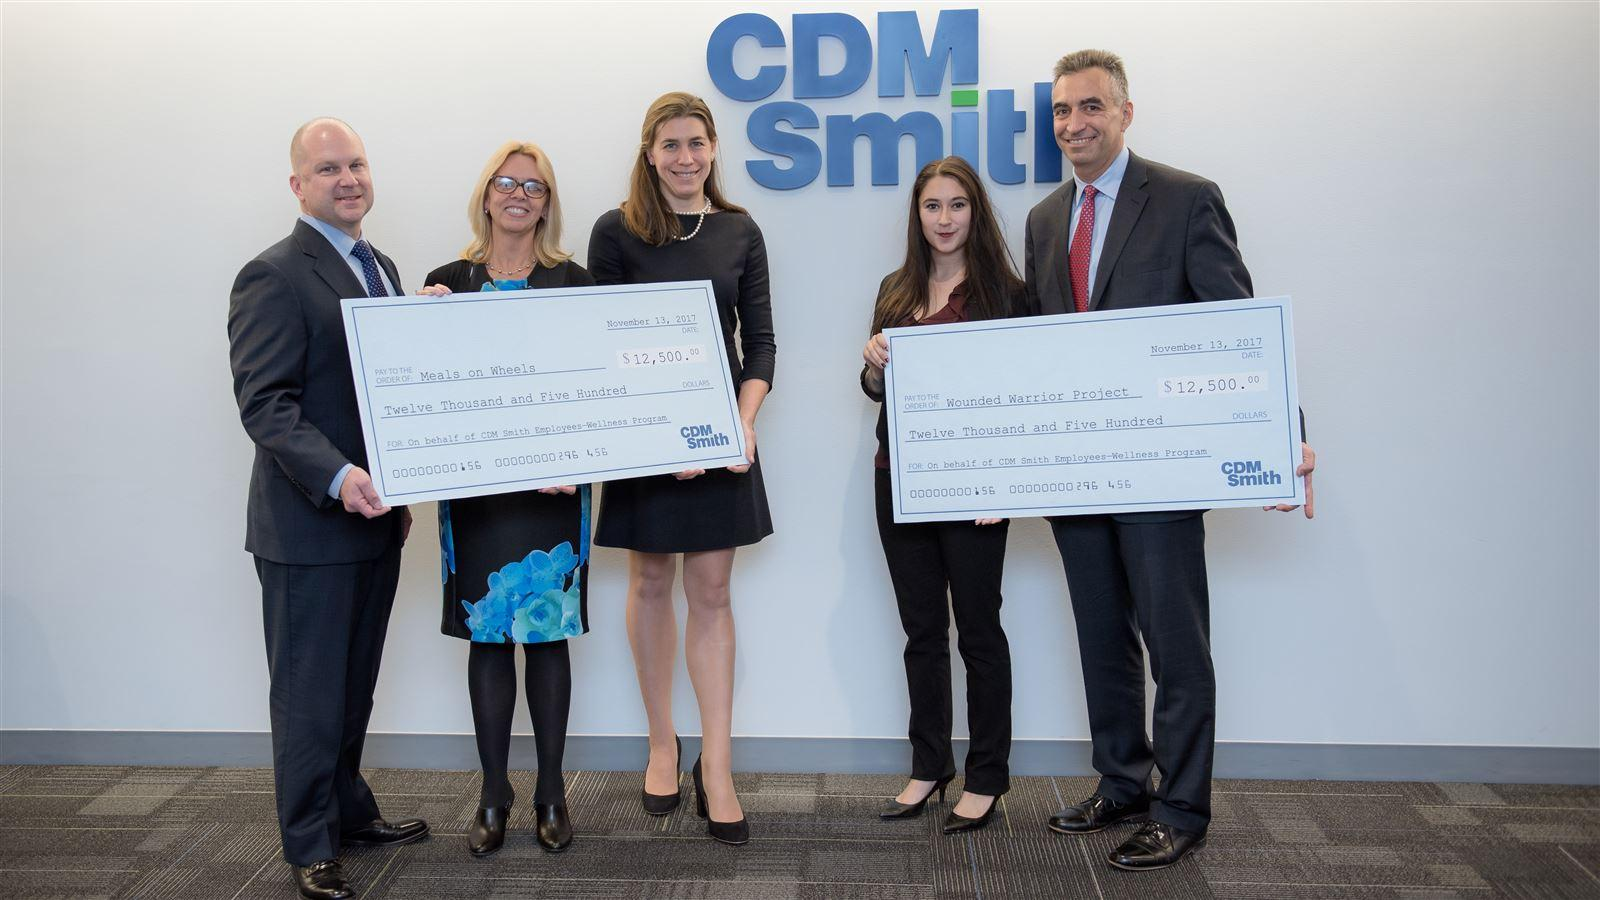 CDM Smith Donates $25,000 to Meals on Wheels America and Wounded Warrior Project - CDM Smith